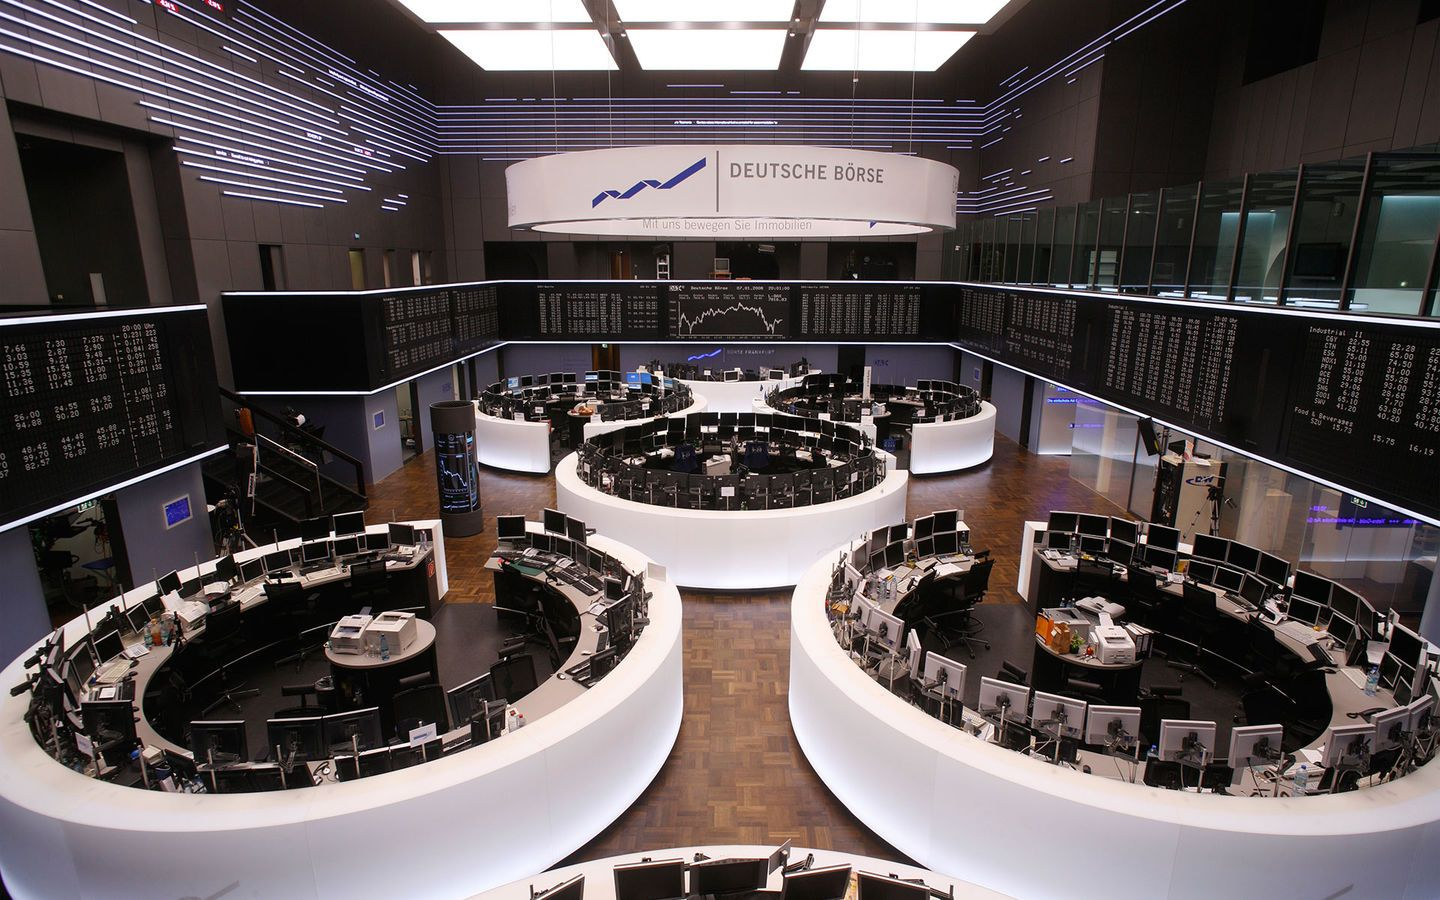 Deutsche_Boerse_Corporate_Scenograpyh